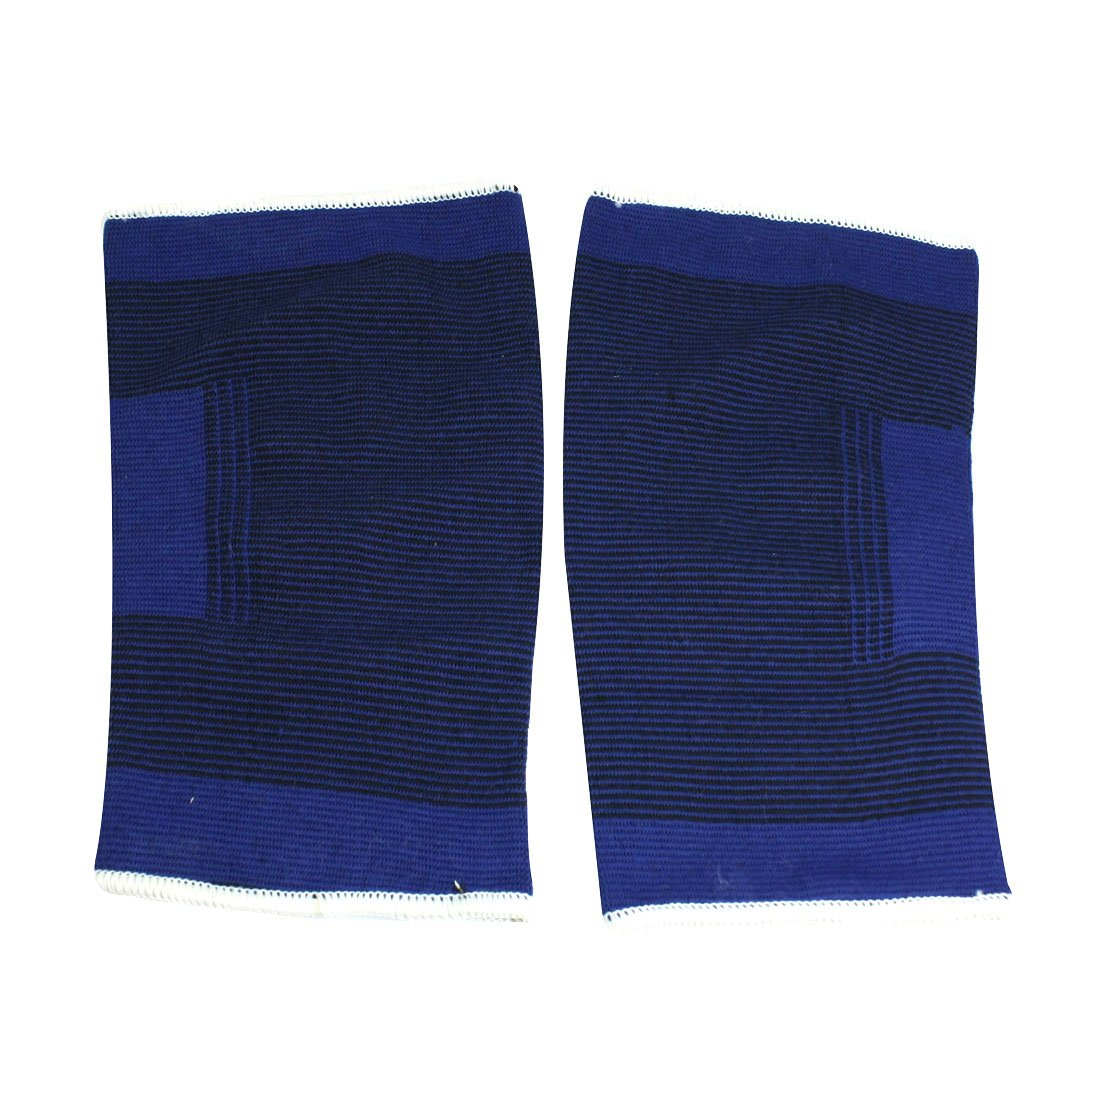 ELOS-Fitting Stretchy Black Blue Knee Sleeve Support Protector 2 Pcs